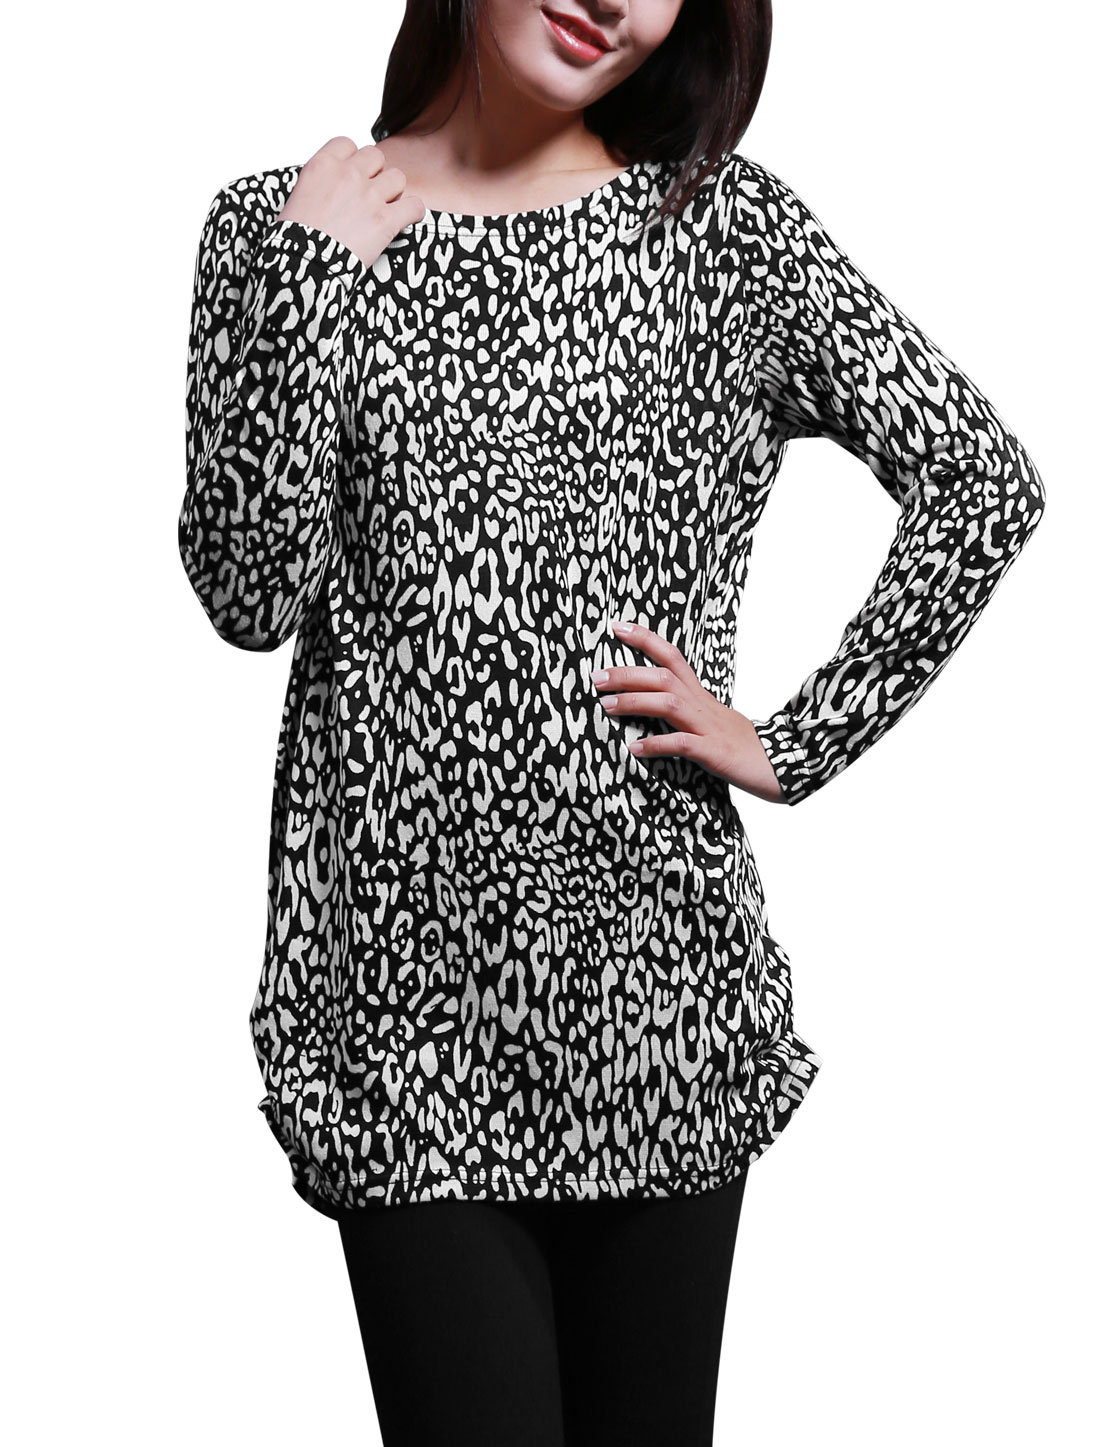 Women Casual Long Sleeves Allover Leopard Print Tunic Knit Shirt Black White M